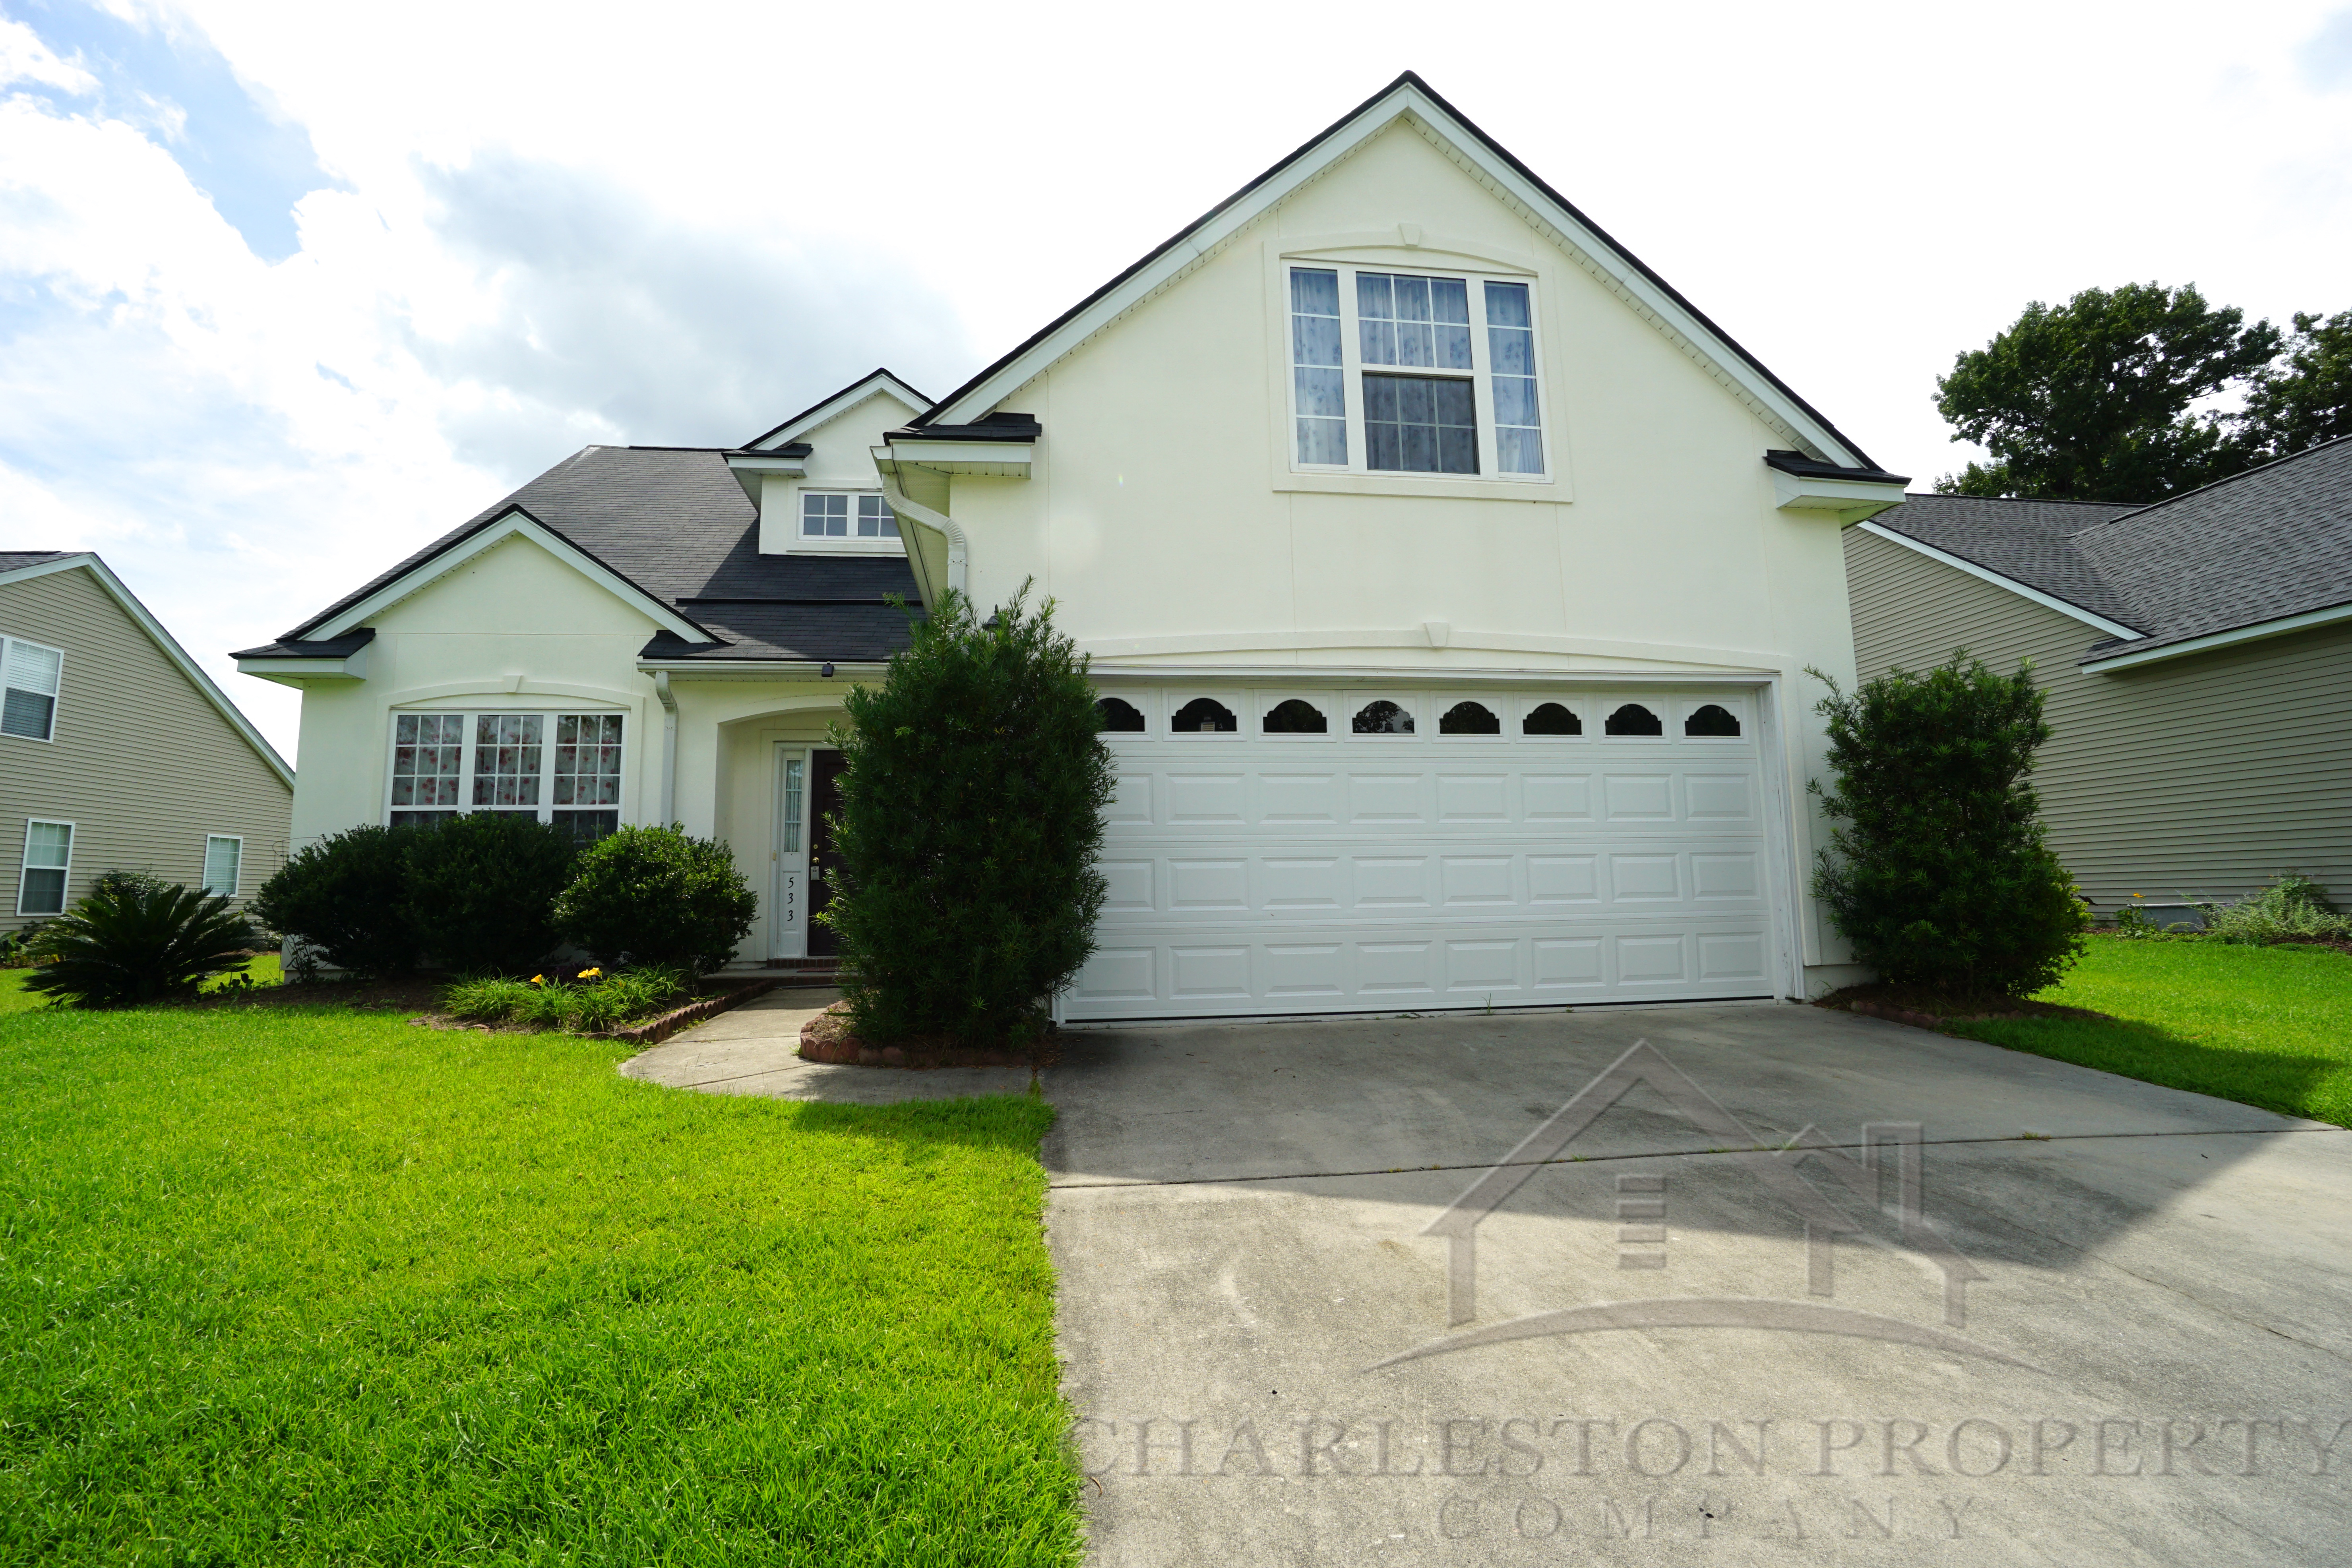 533 Tribeca Dr Charleston SC 29414-9042 - Photo 1